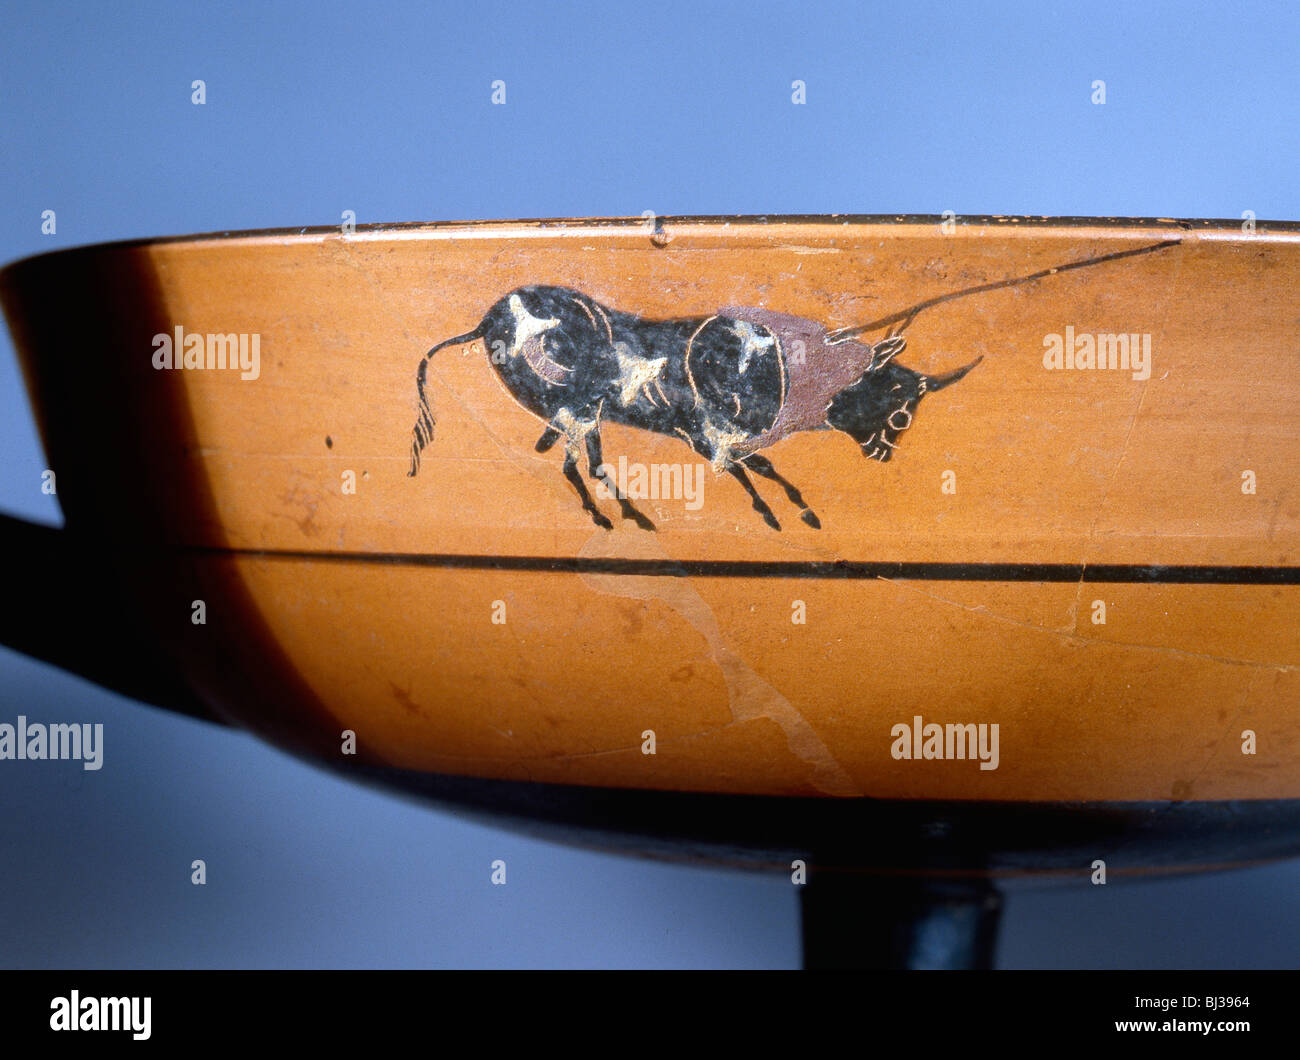 6th Century Bc Attic High Resolution Stock Photography And Images Alamy